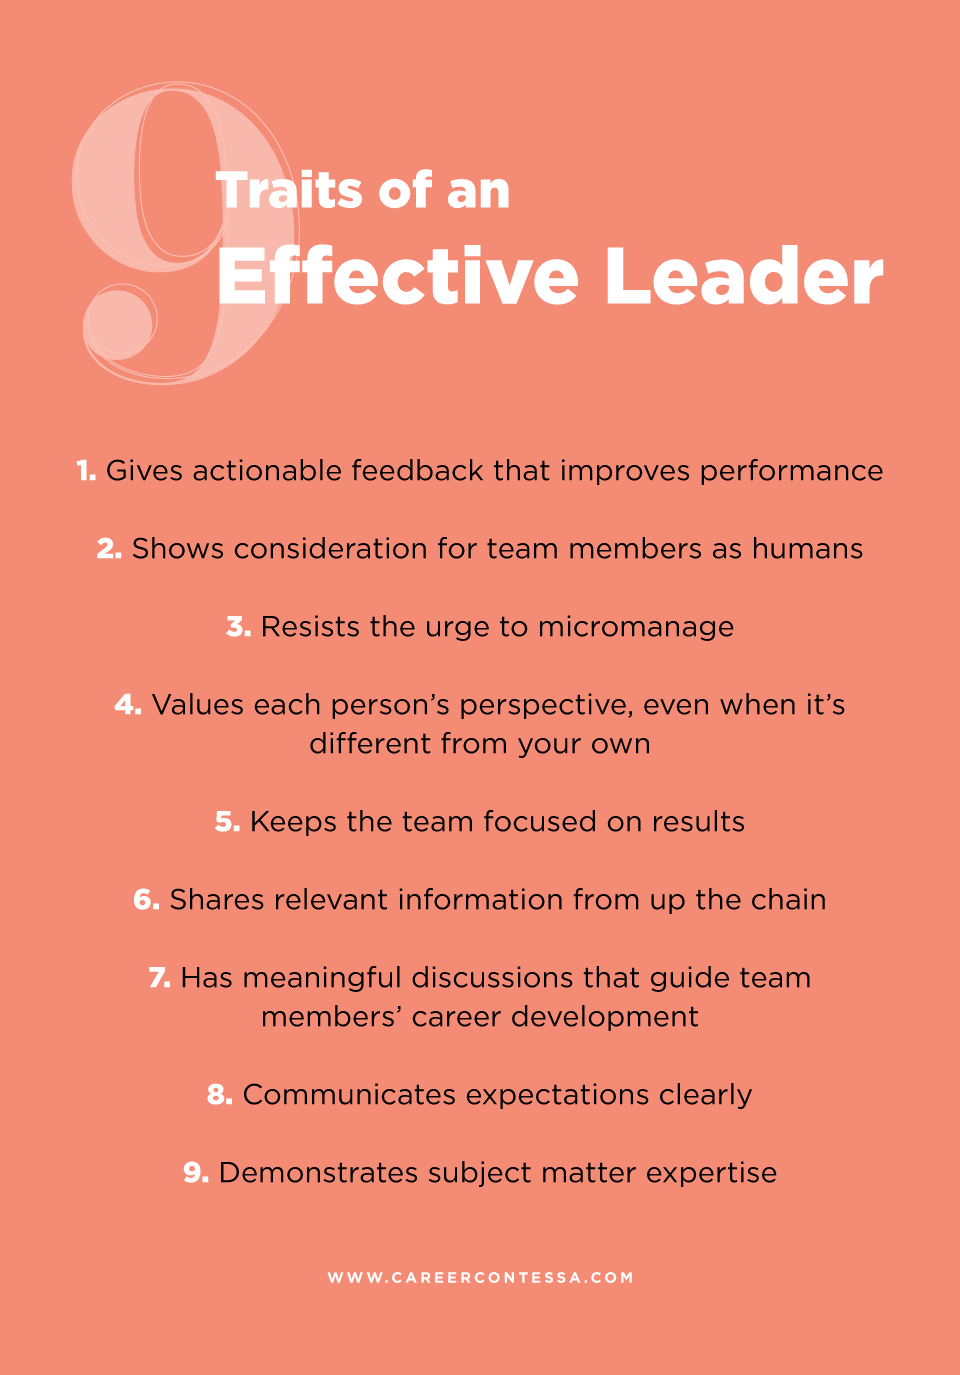 How to Be an Effective Leader, According to Google | Career Contessa